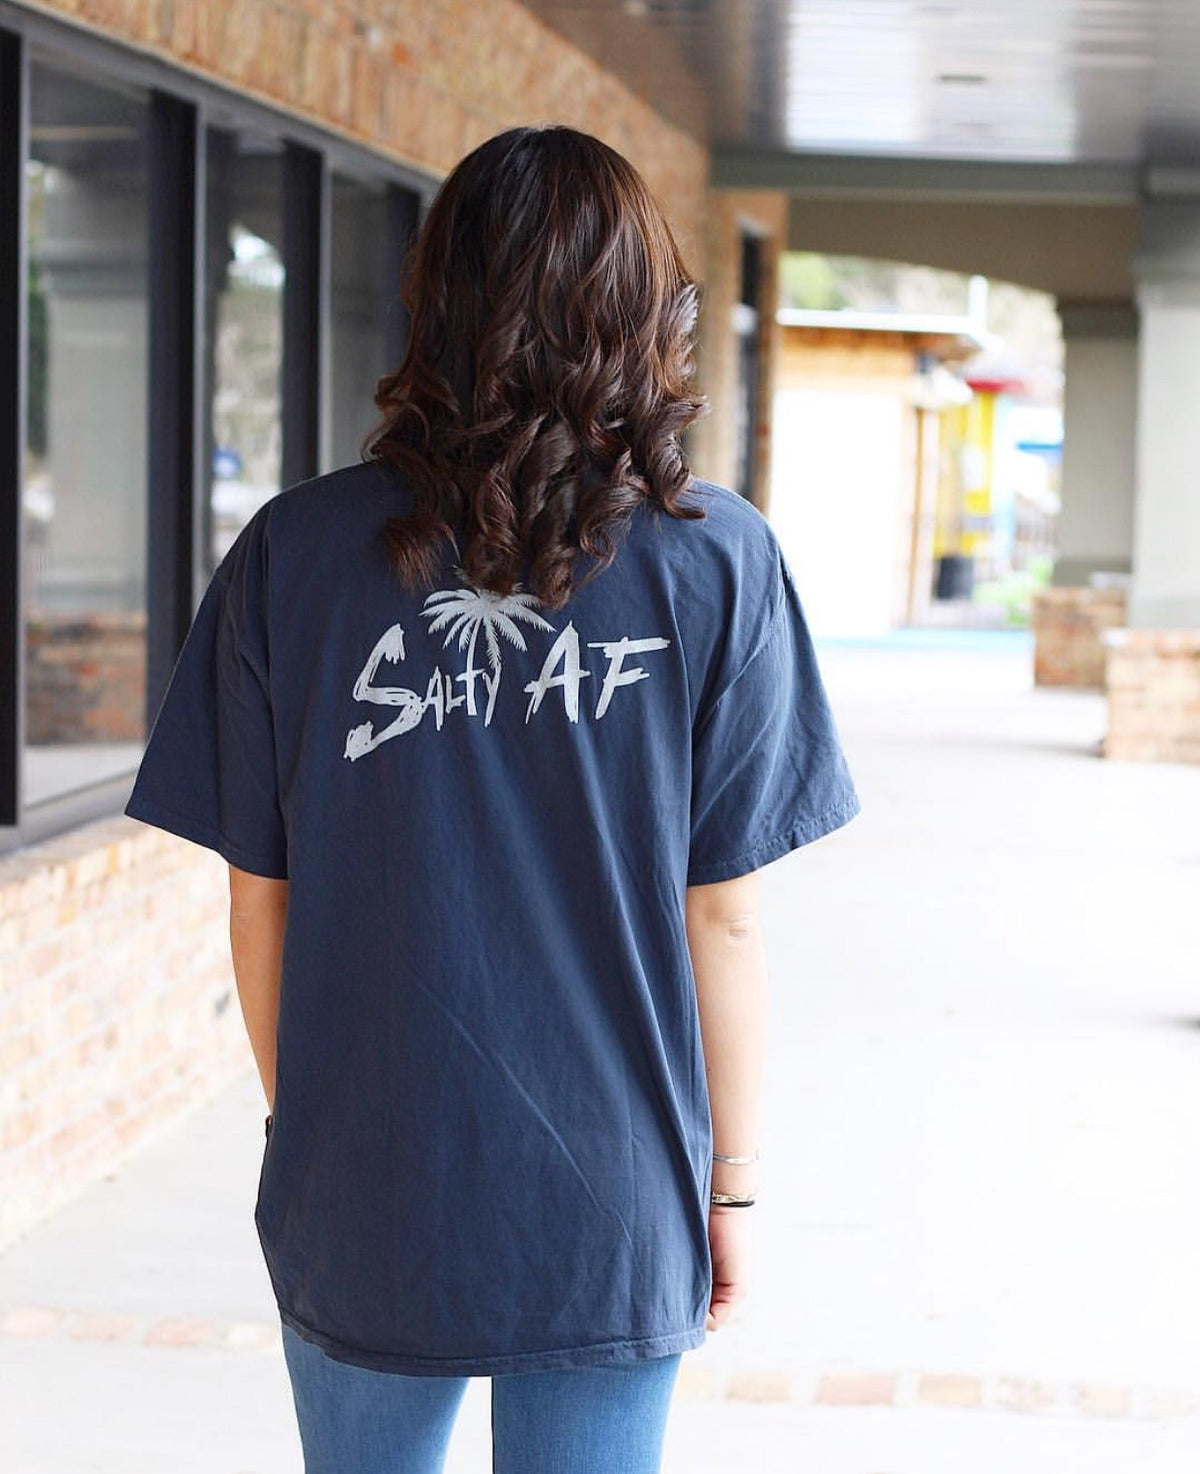 S'ALL Good Salty af tshirt*